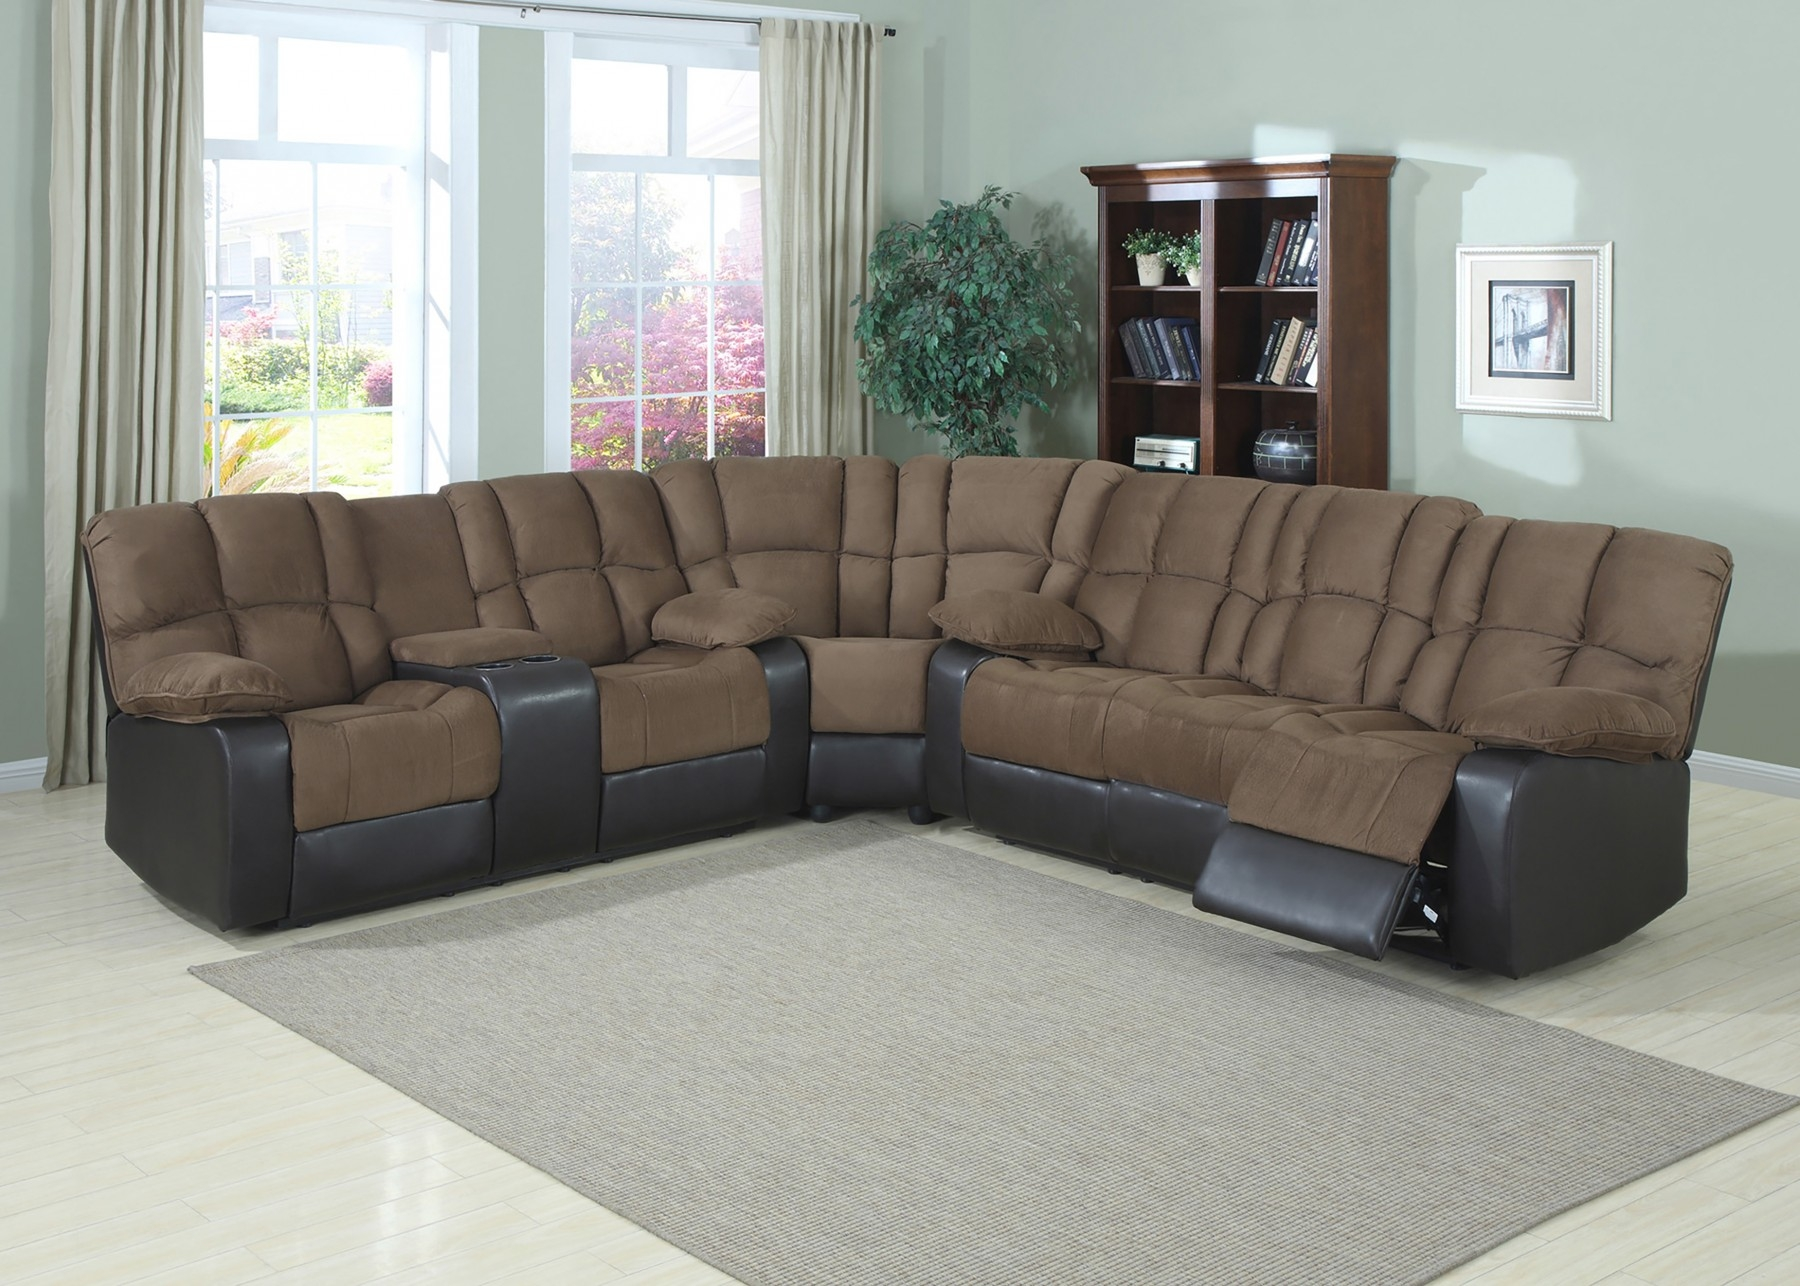 Decor Artificial Classic Corduroy Sectional Sofa For Unique Throughout Extra Wide Sectional Sofas (View 6 of 15)